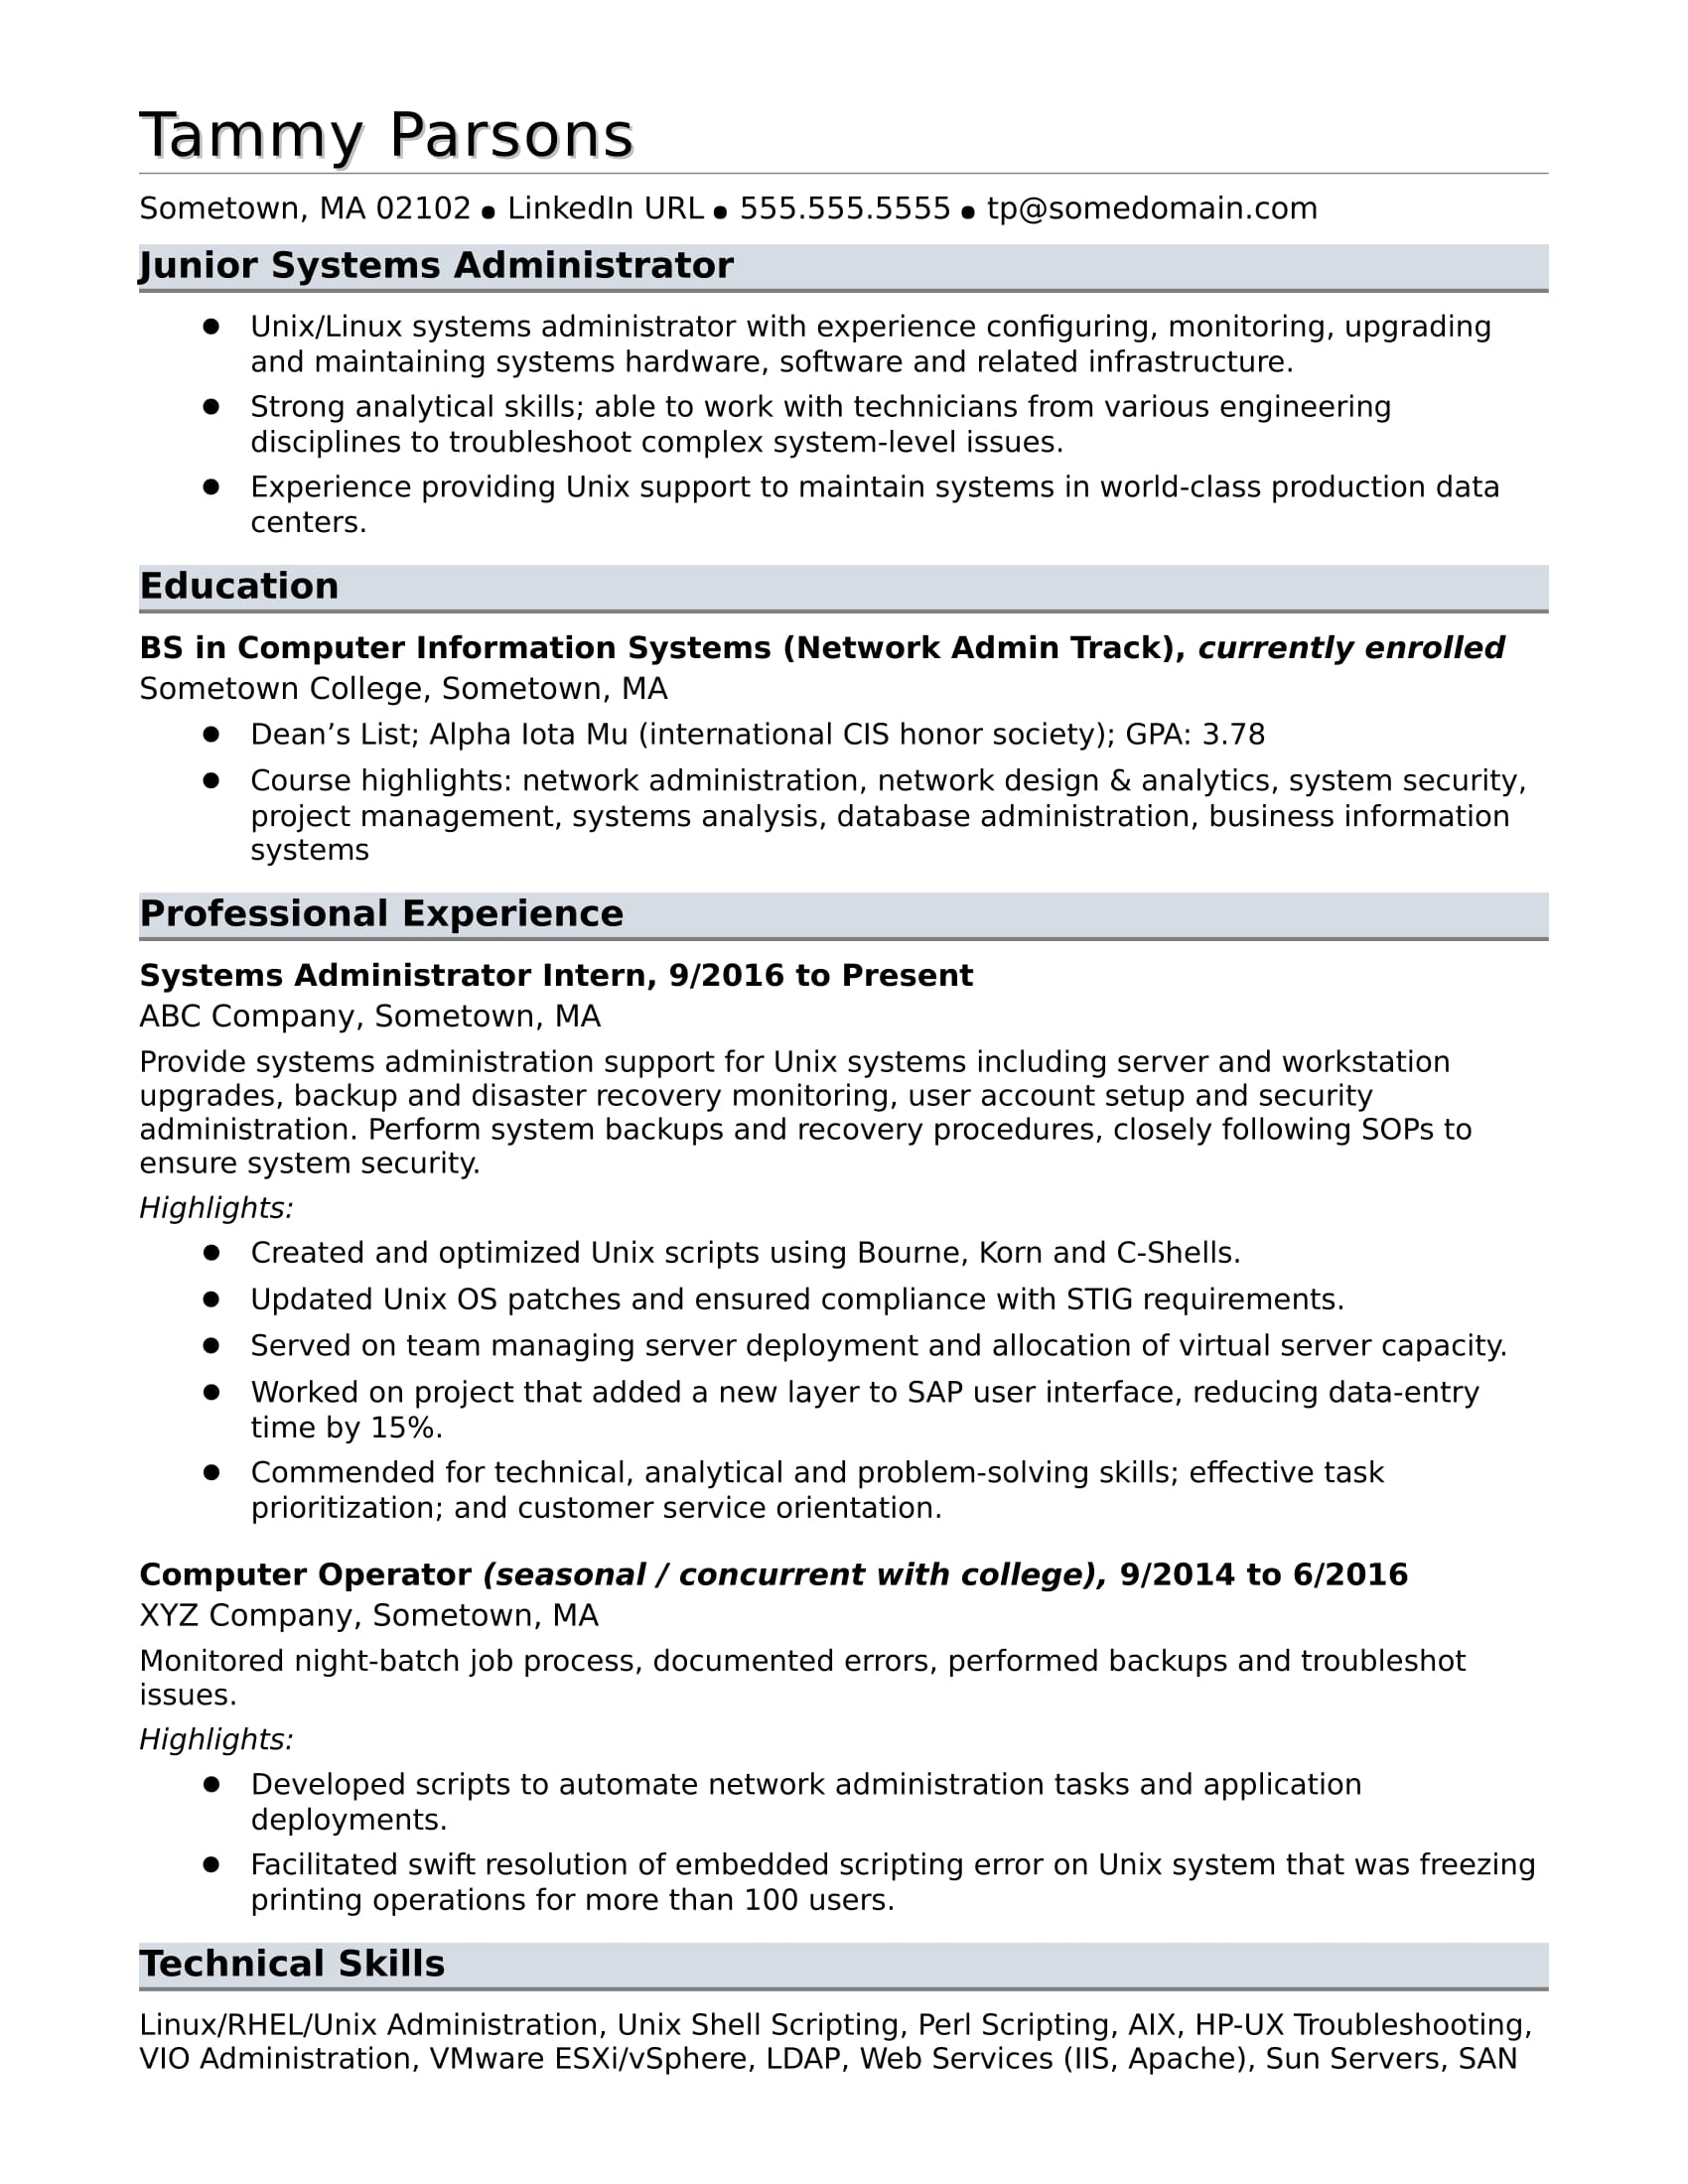 Sample Resume For An Entry Level Systems Administrator  Sample It Resumes